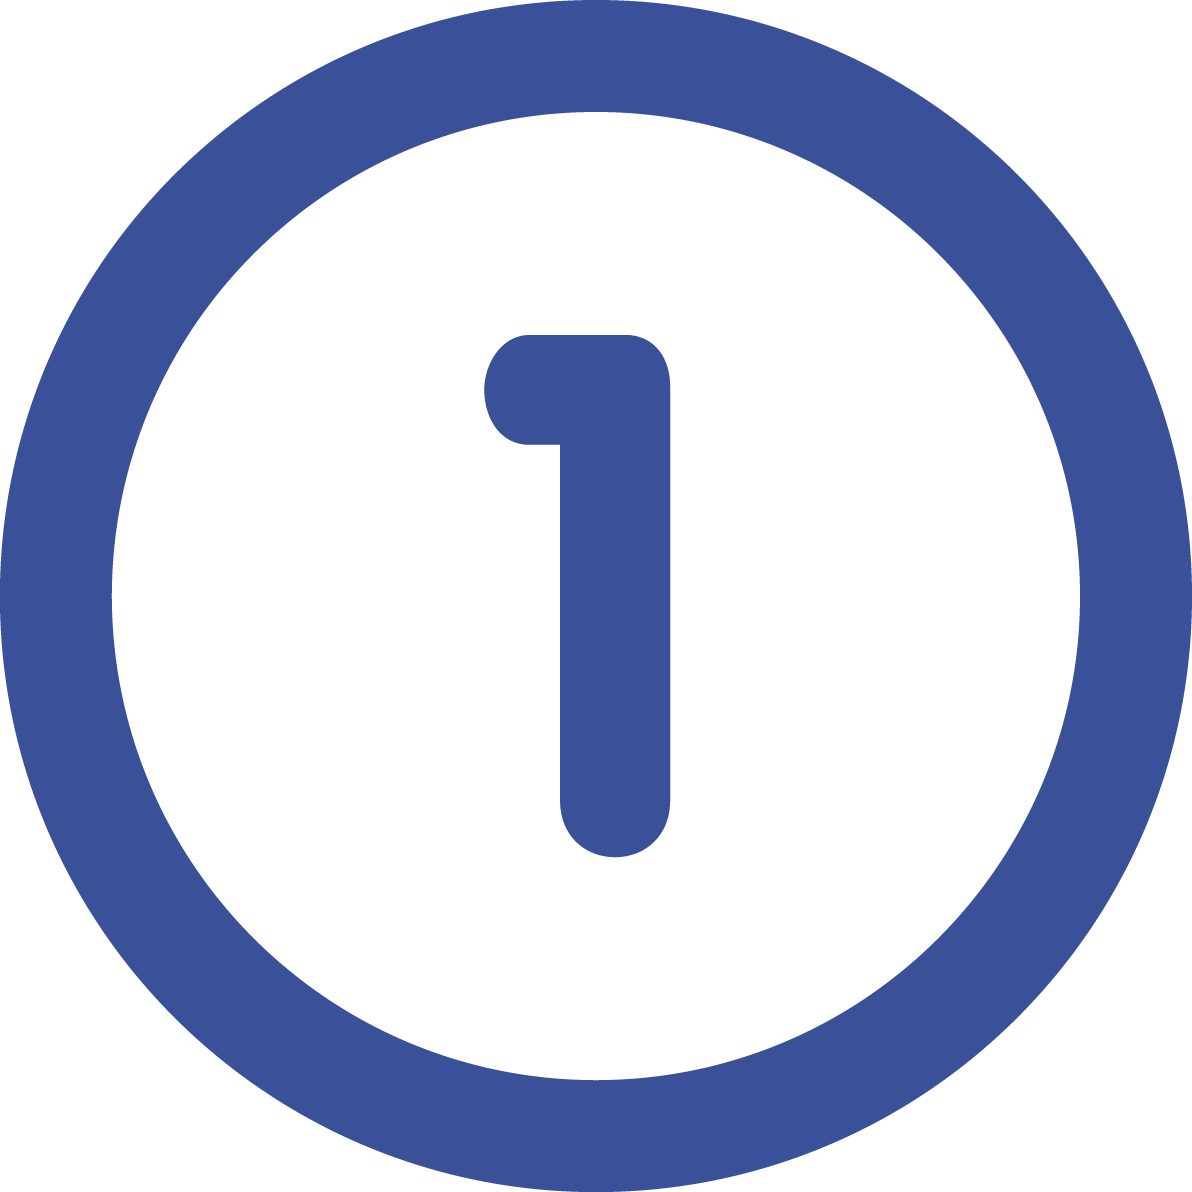 Number 1 designed by Freepik from Flaticon